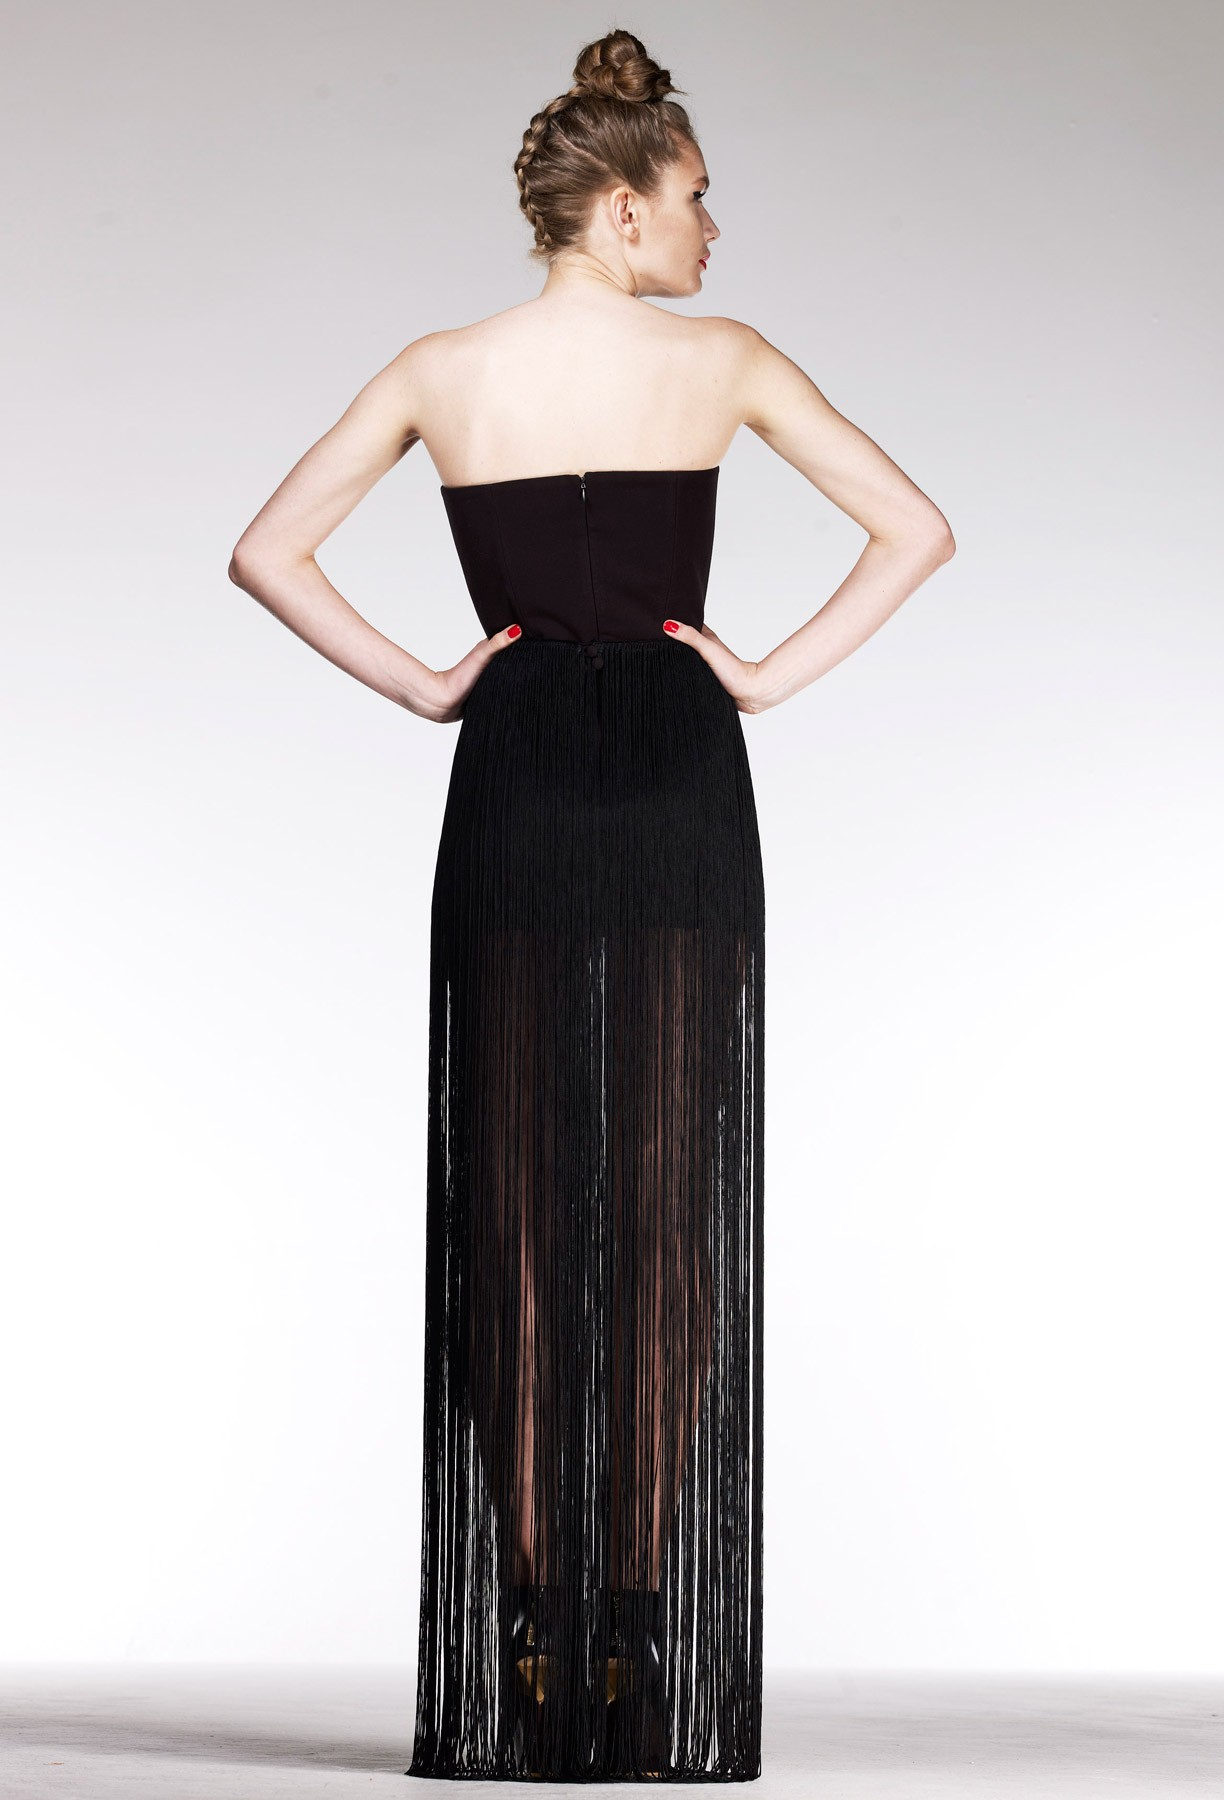 To acquire Maxi Fringe dress pictures trends